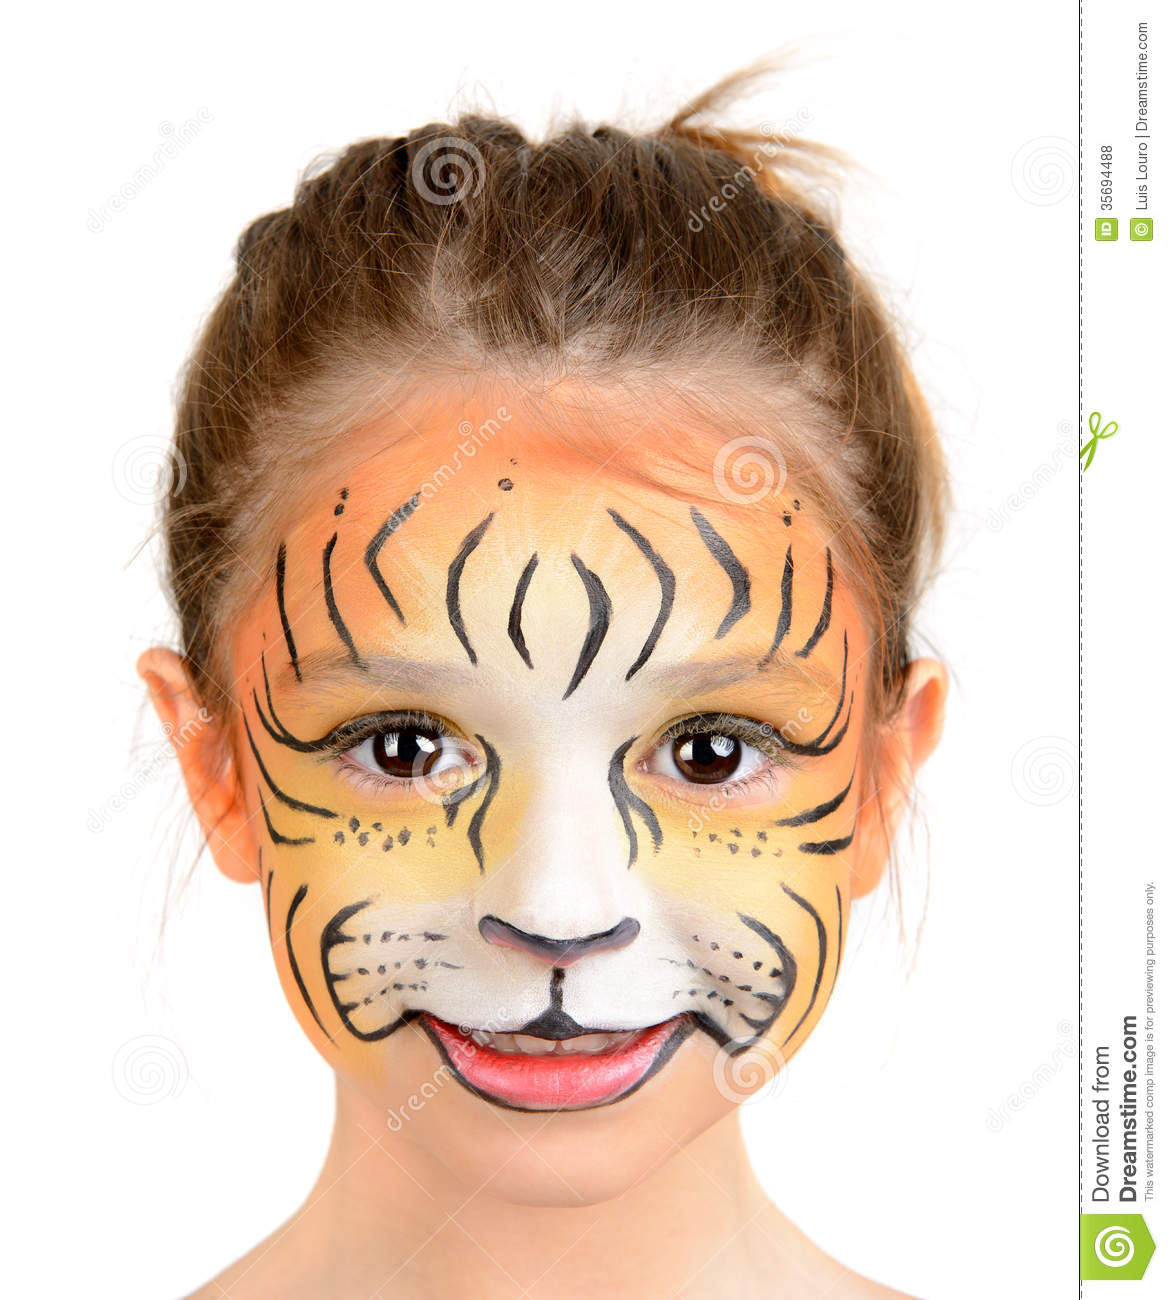 Easy tiger face paint - photo#23